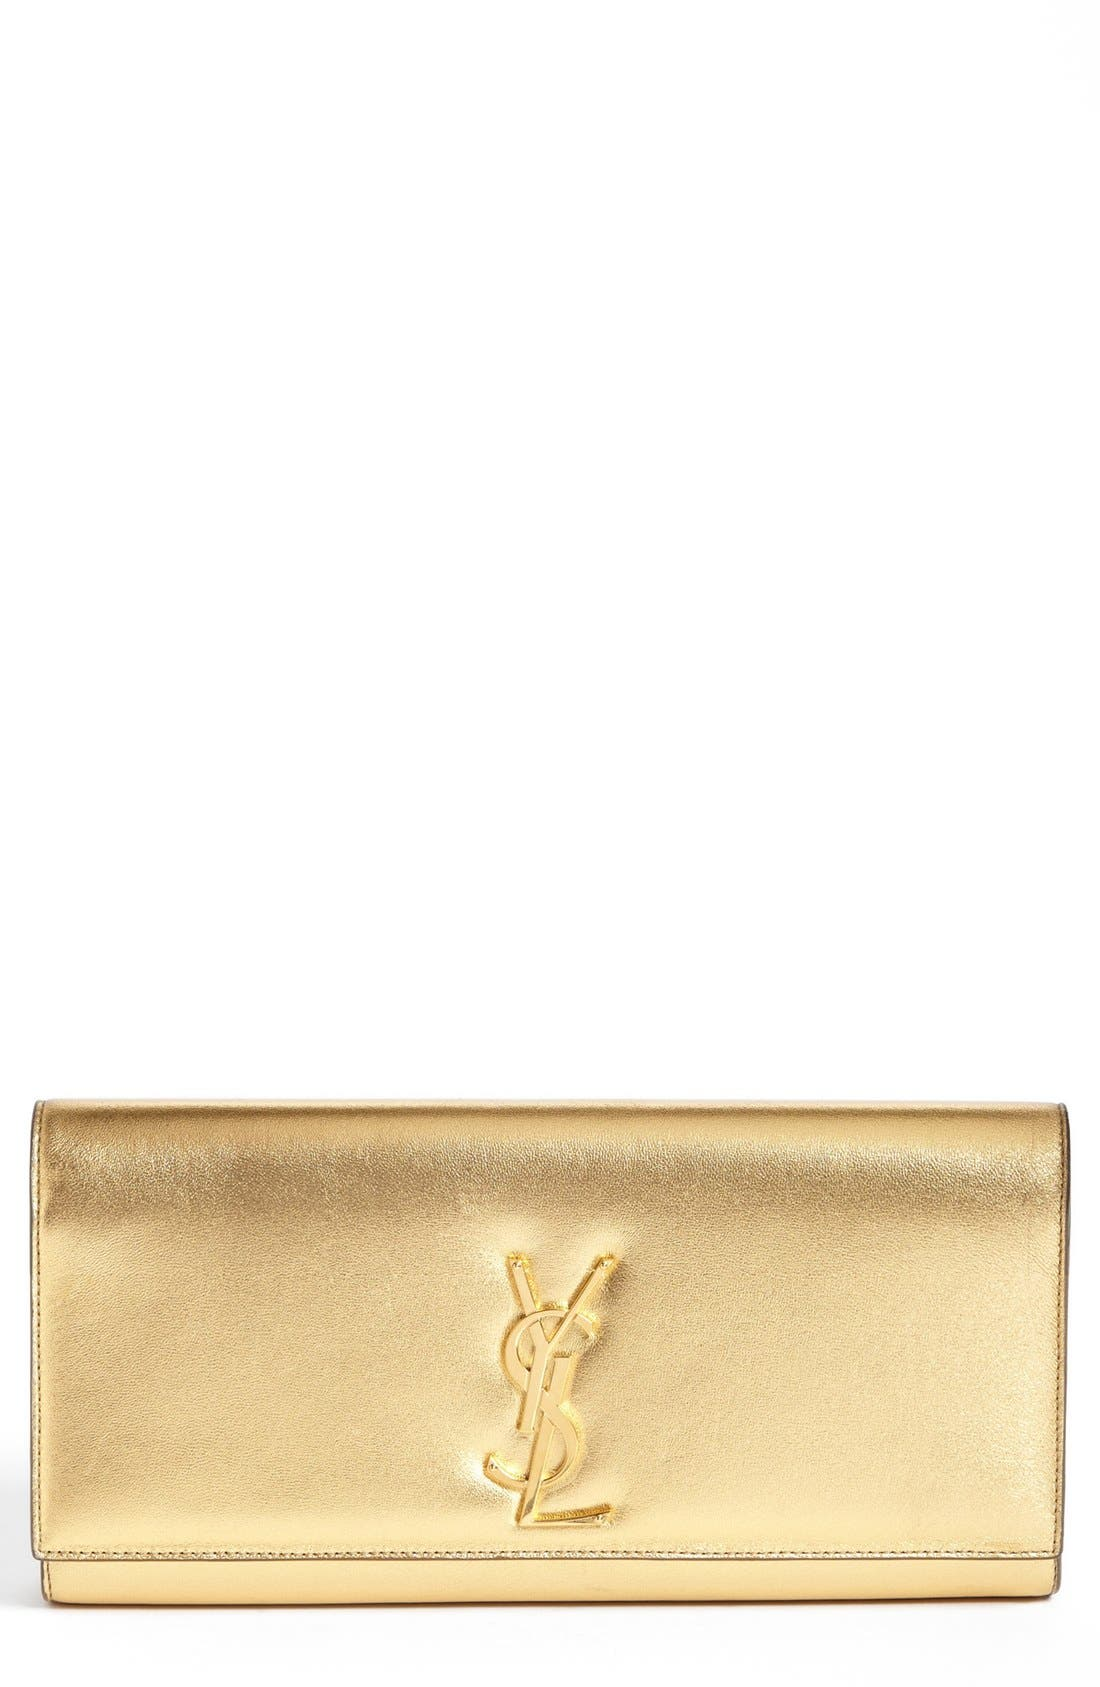 Saint Laurent 'Cassandre' Leather Clutch